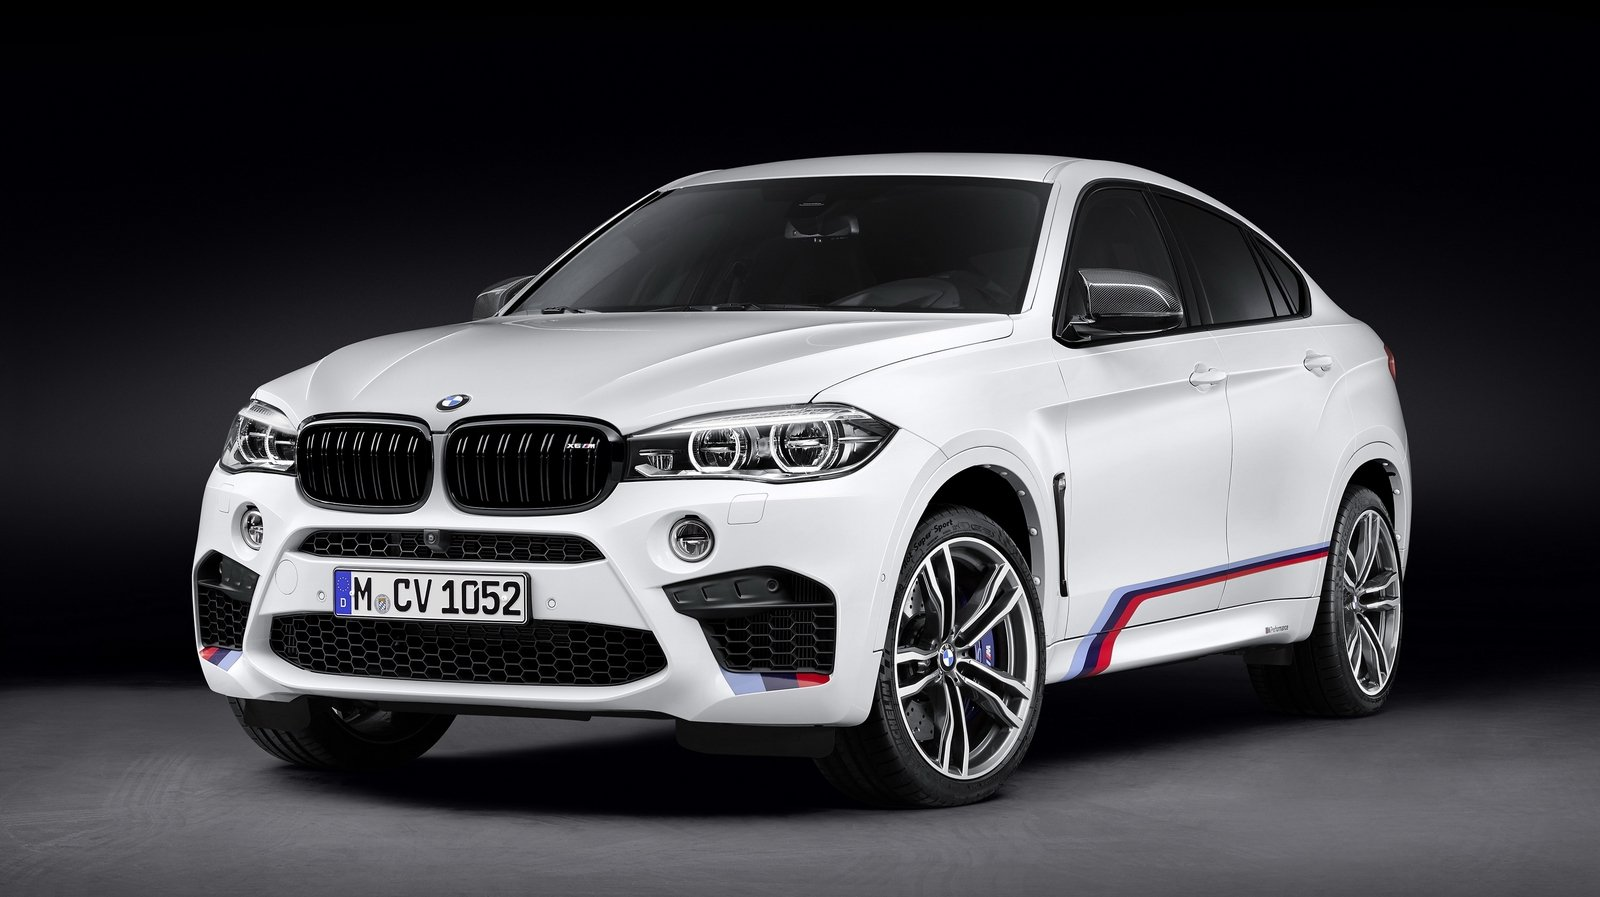 2015 Bmw X6 M With Bmw M Performance Parts Top Speed